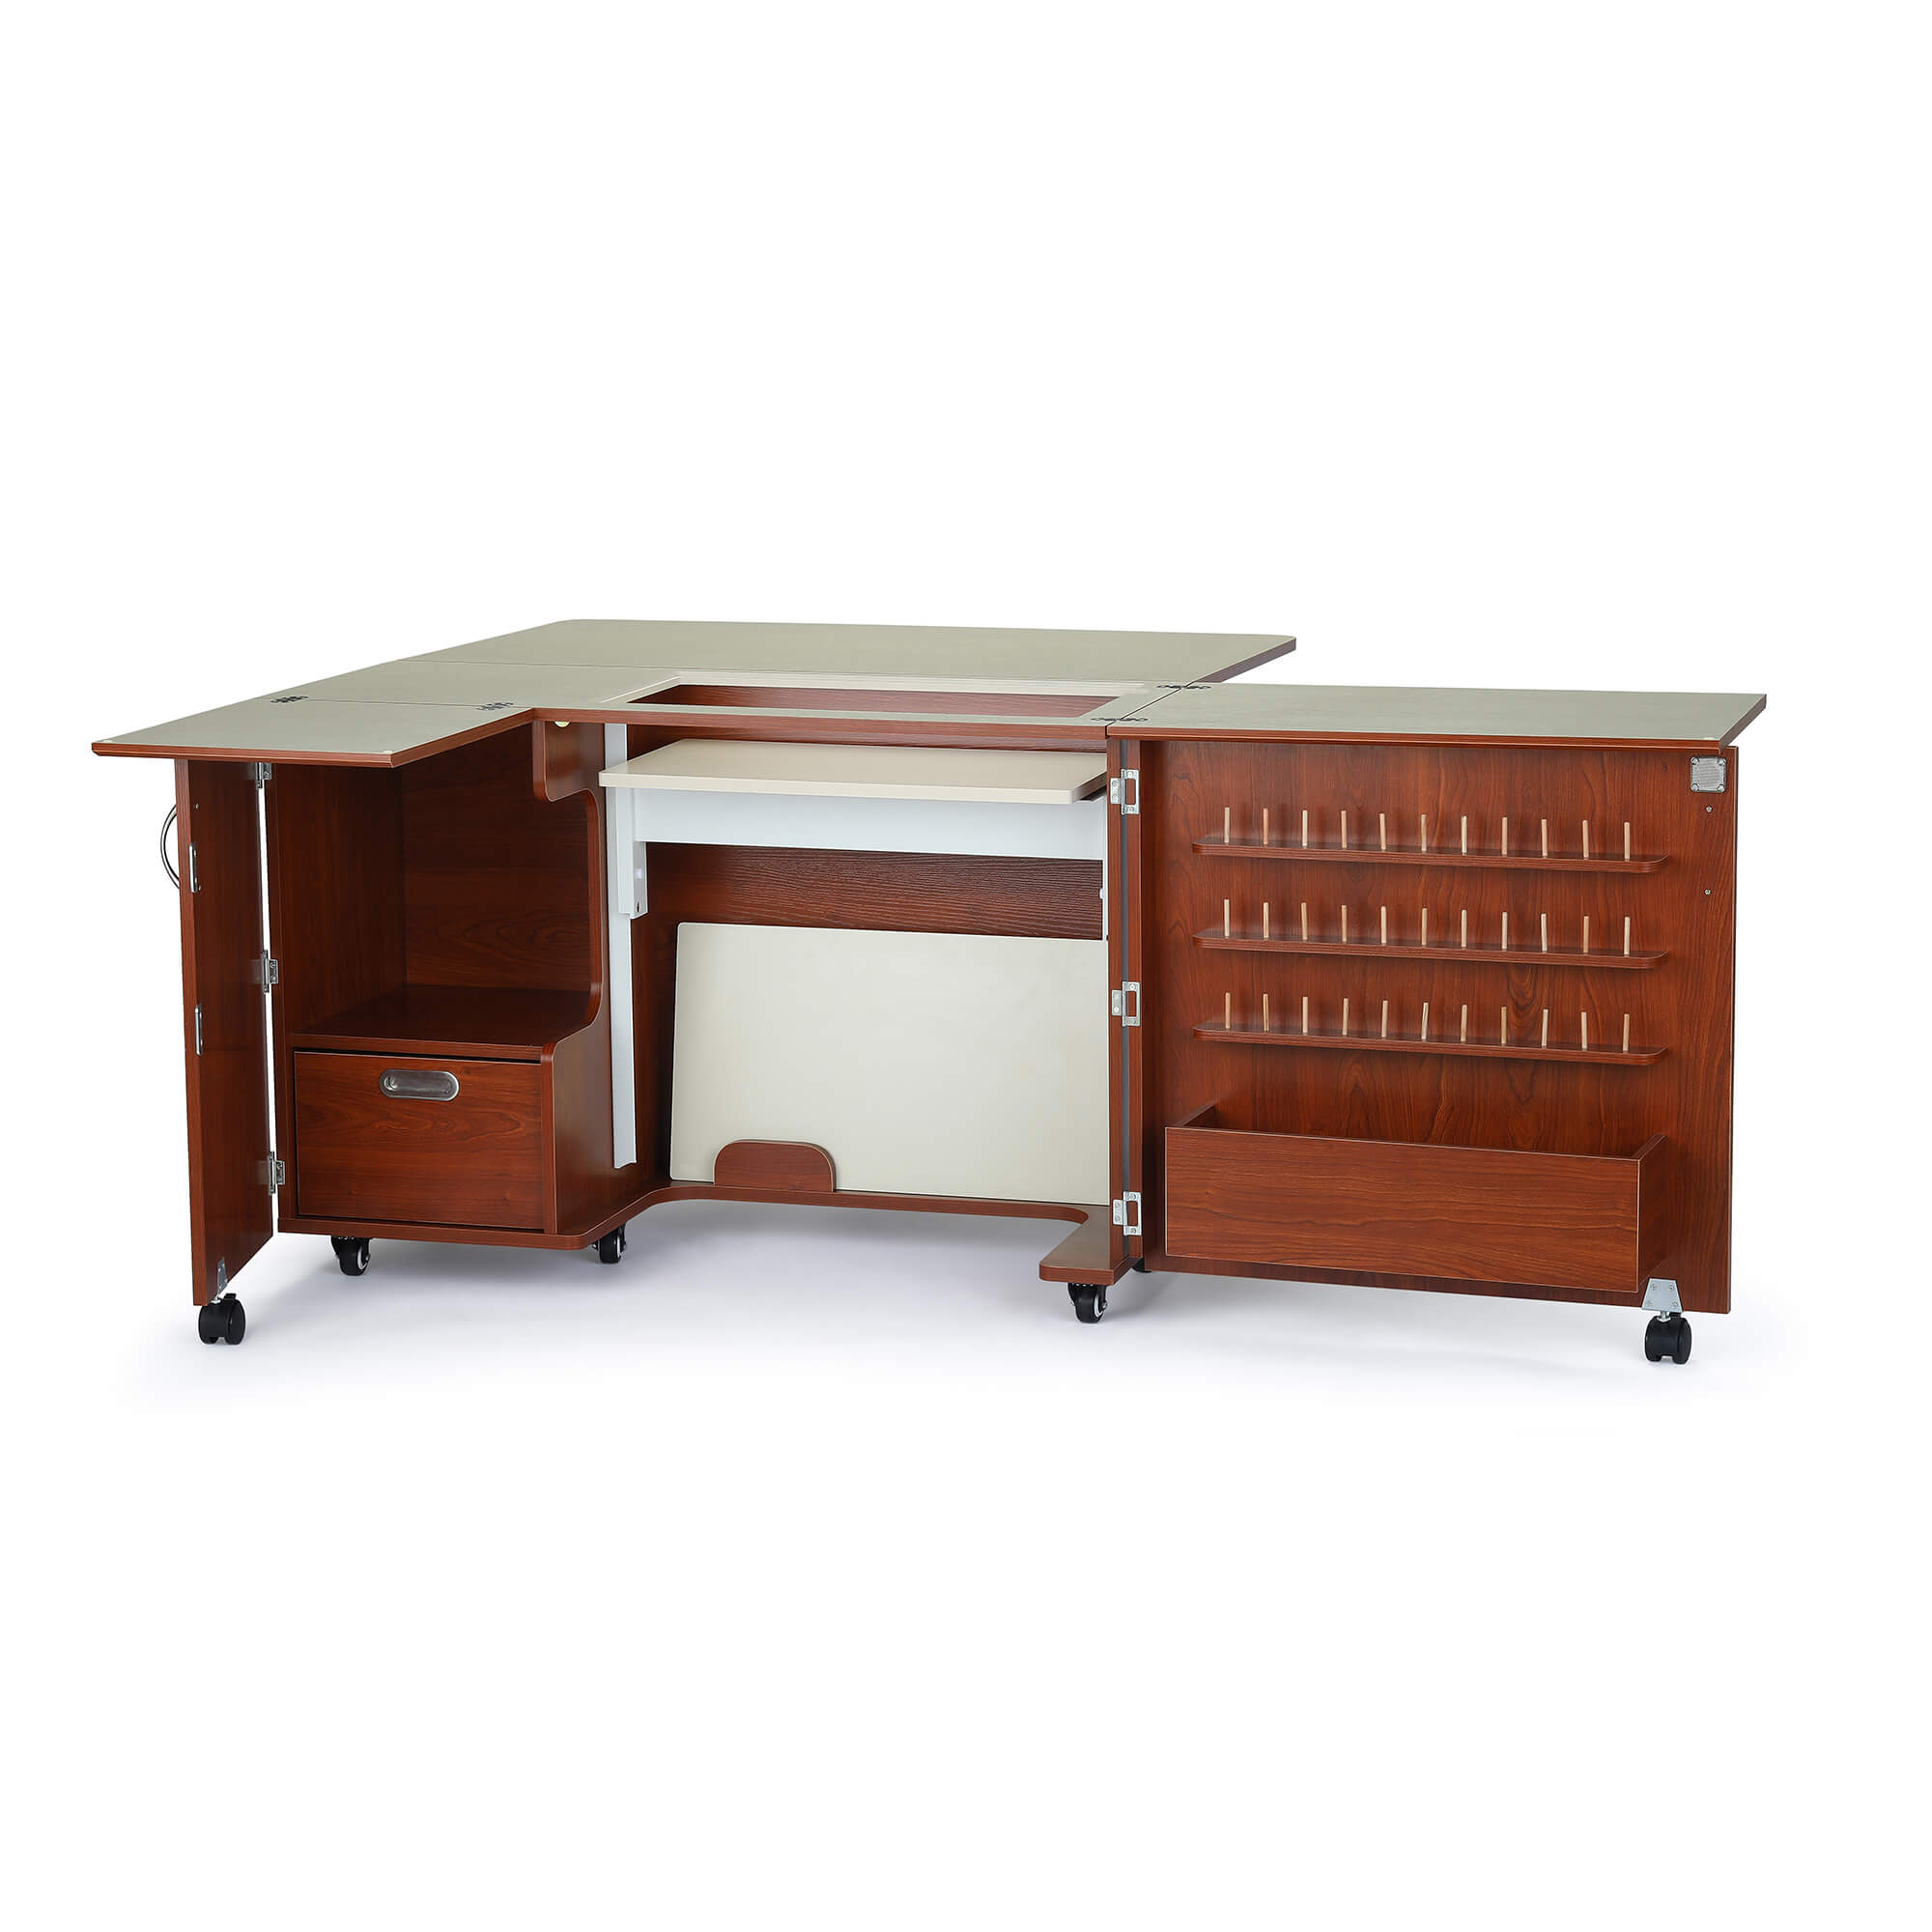 Wallaby II Cabinet  Arrow Sewing Cabinets